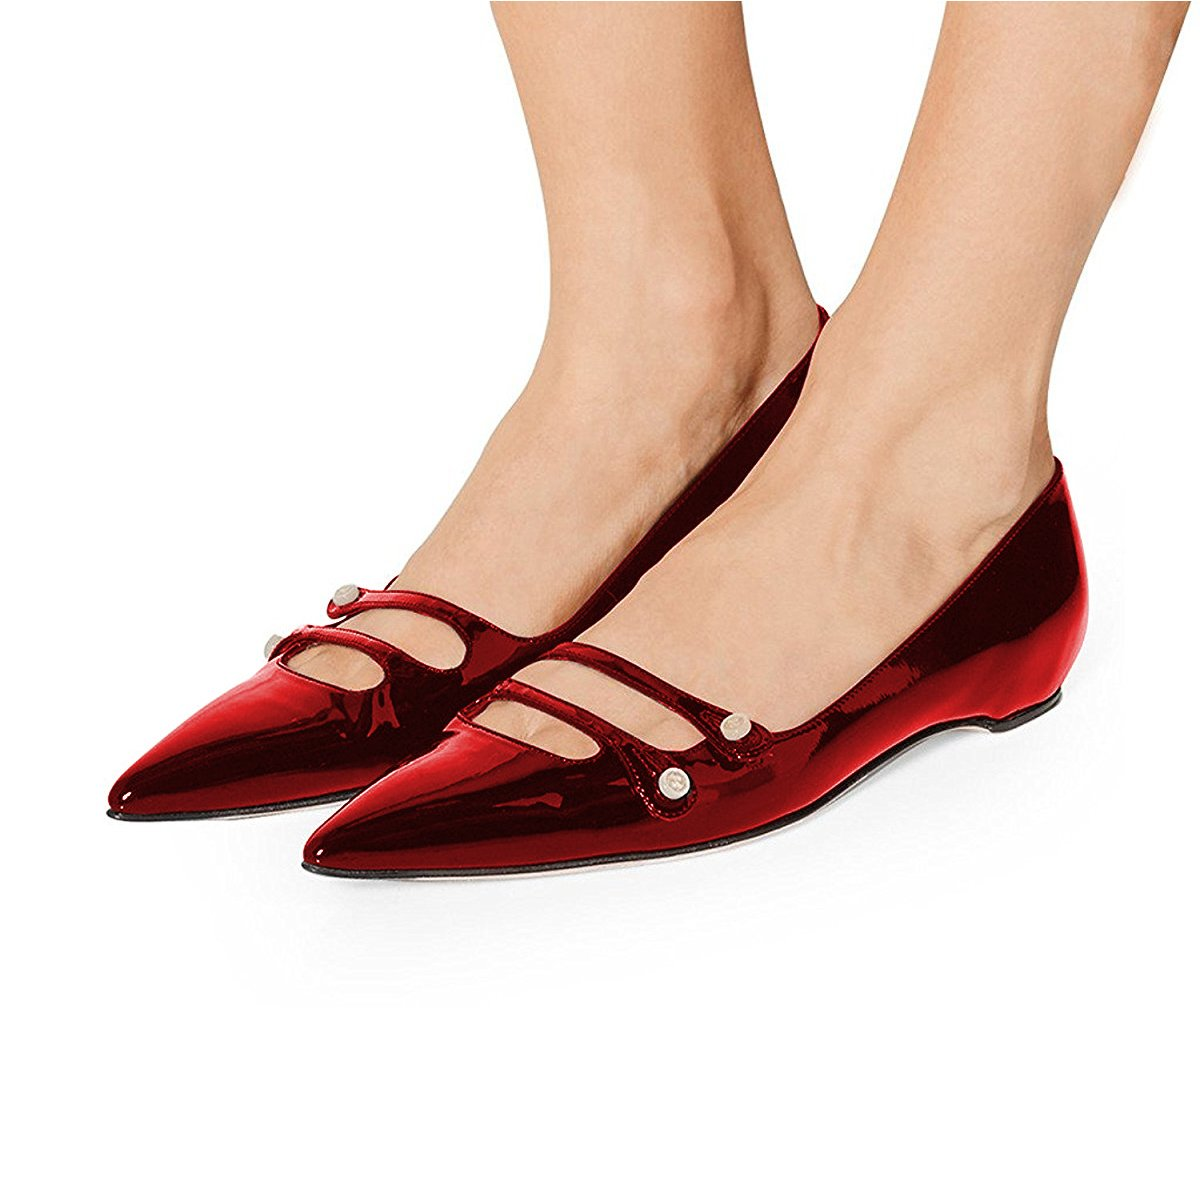 YDN Women Pointed Toe Slip on Flats Hidden Low Heels Pumps Comfort Shoes with Straps B077G237G2 12 M US|Wine Red